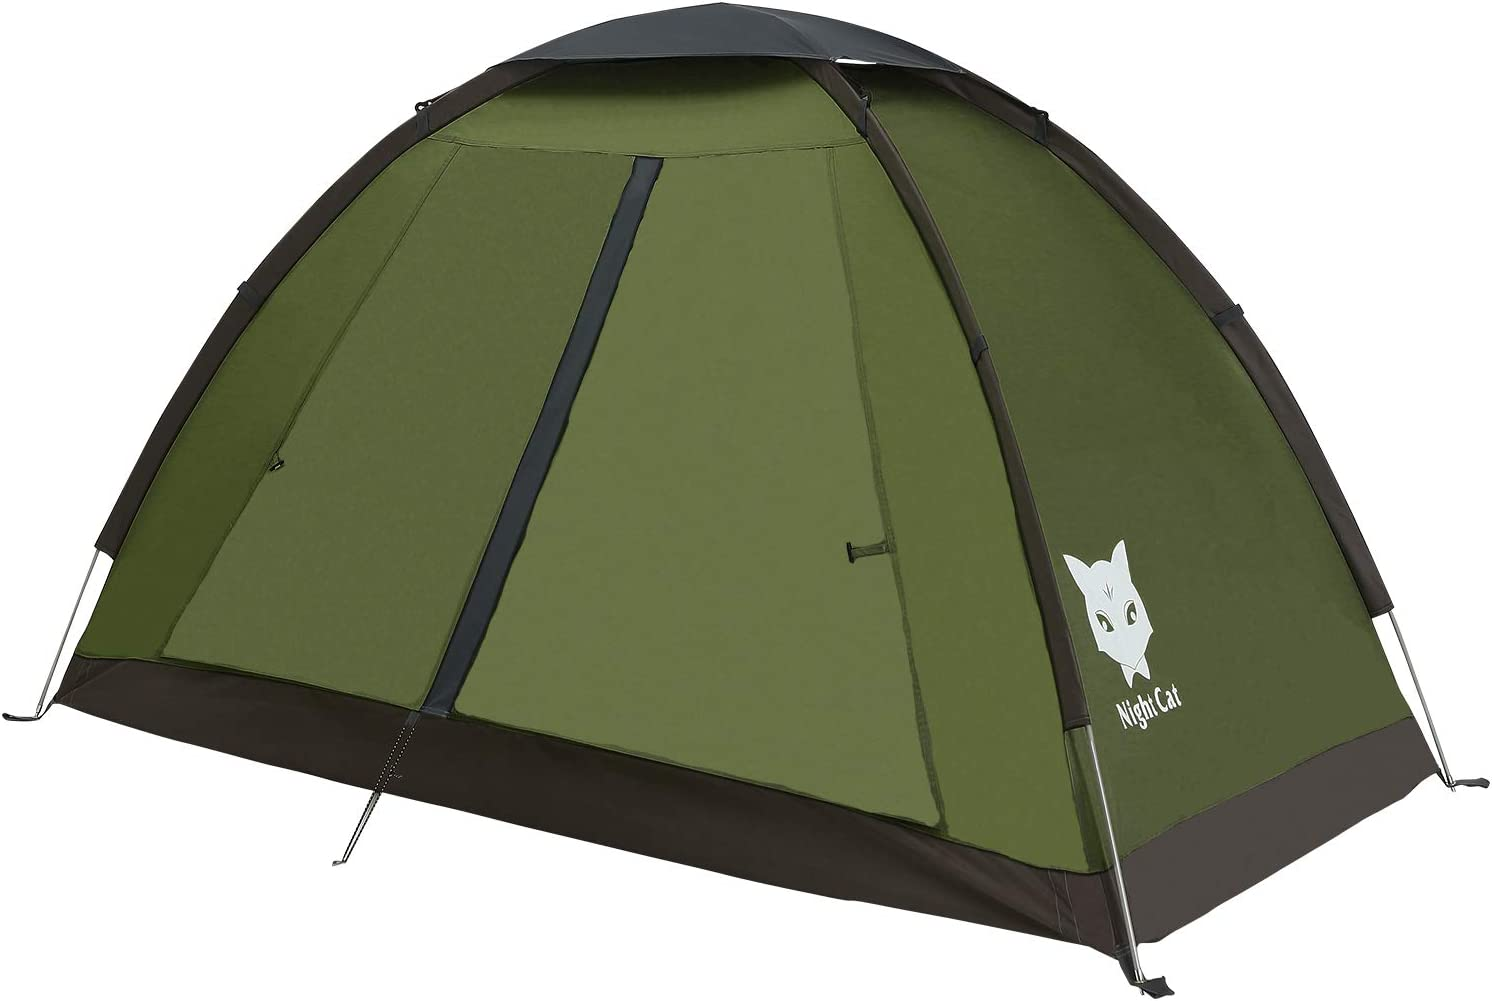 Night Cat Backpacking Tent for One